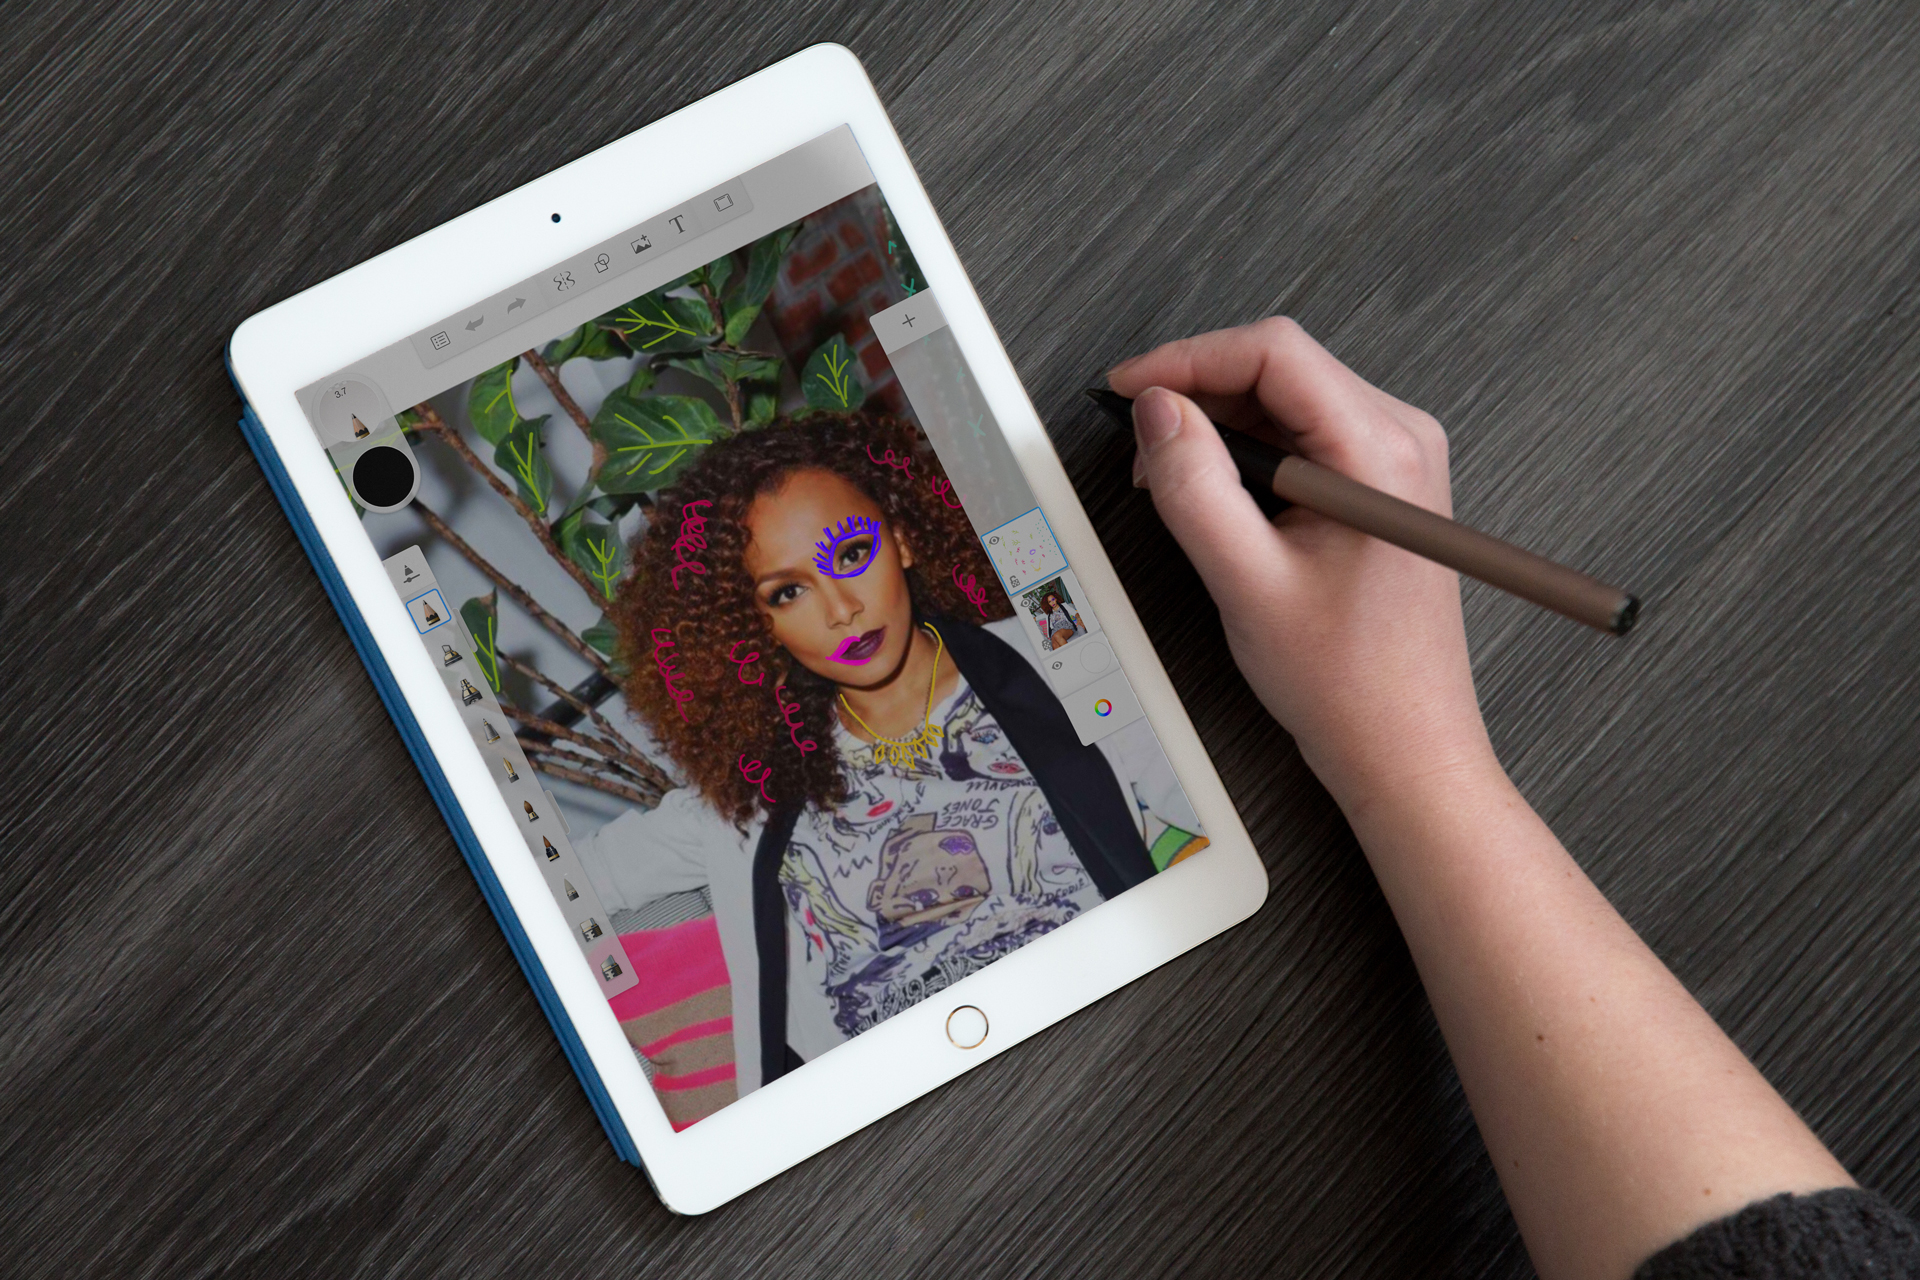 A woman's hand sketching illustrative details on an iPad